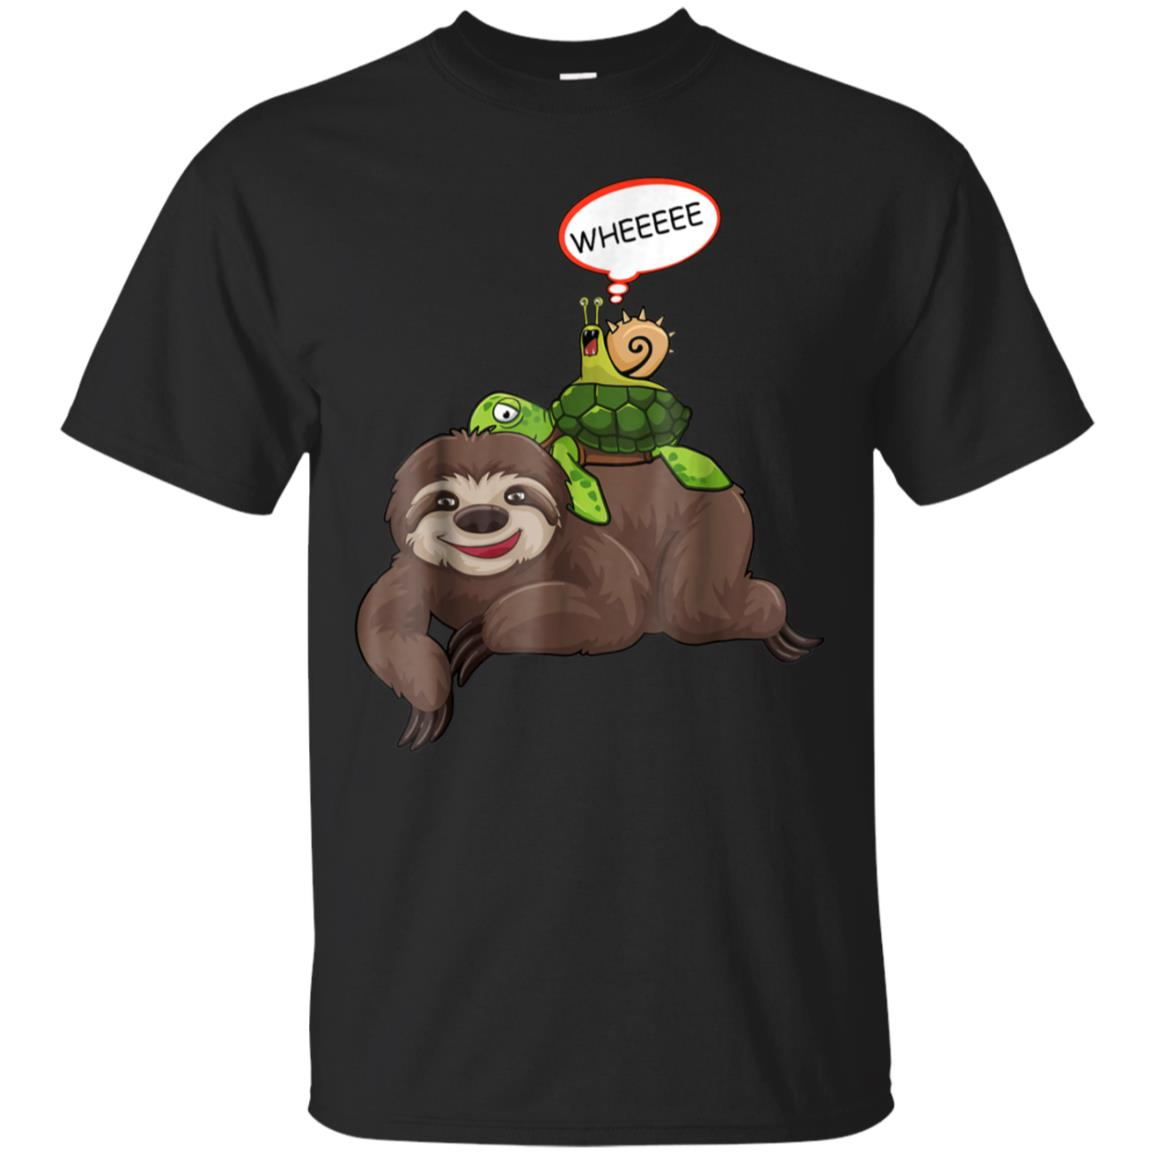 Sloth Turtle Snail Funny Sloth Cute Sloth Lover Shirt Gift 99promocode